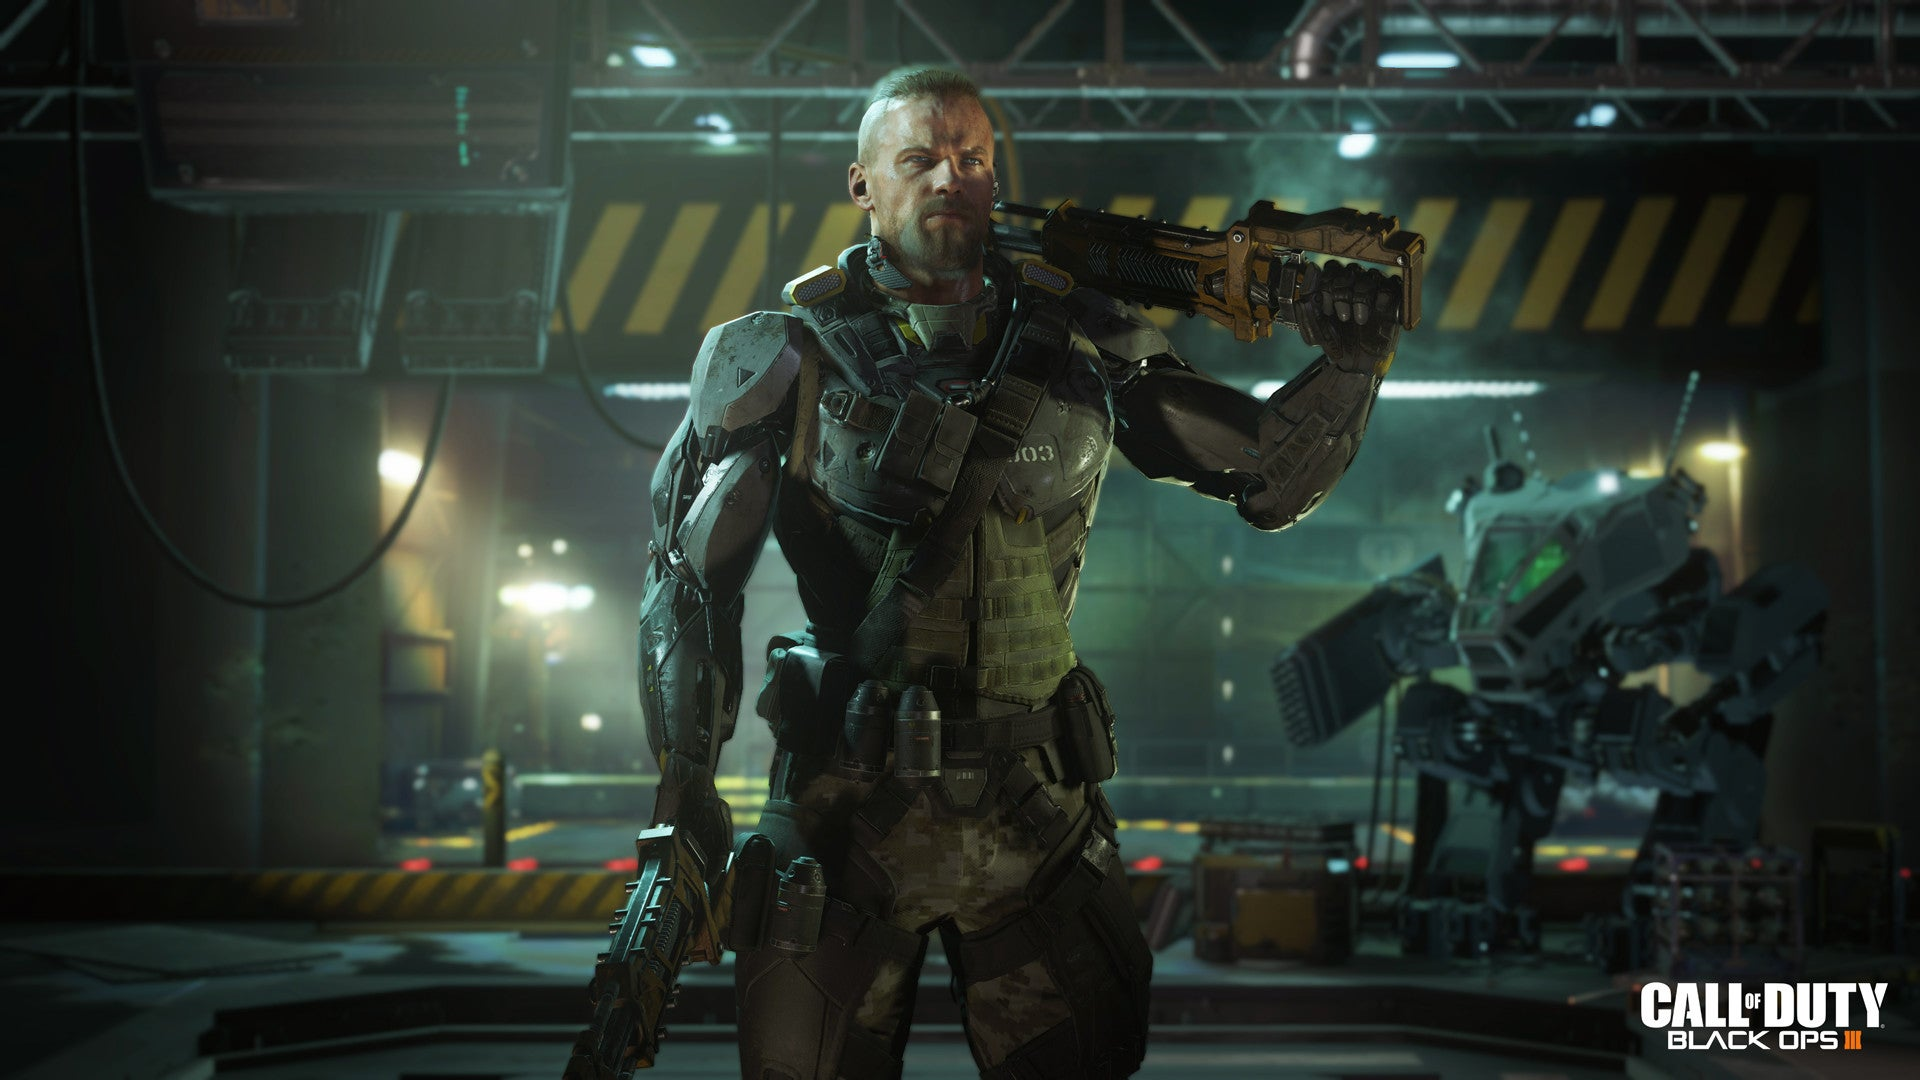 Sources: Call Of Duty 2020 In Upheaval As Treyarch Takes Over, Plans Black Ops 5